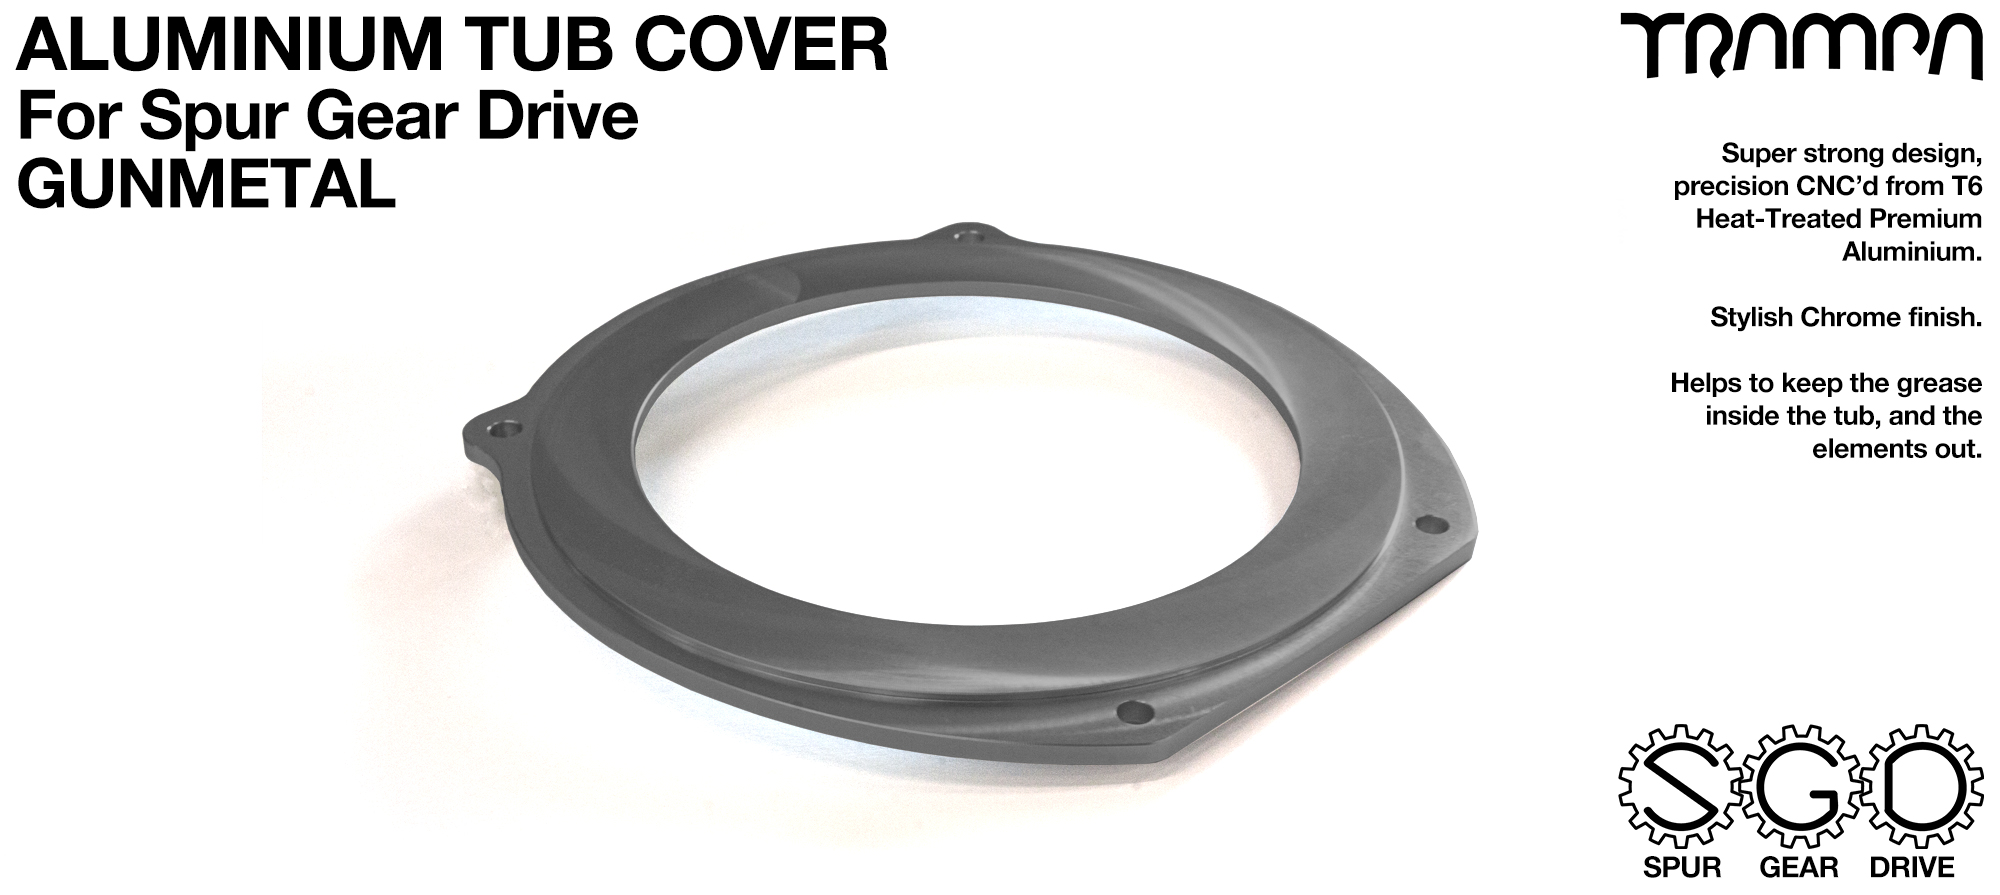 Spur Gear Drive Tub Cover - GUNMETAL